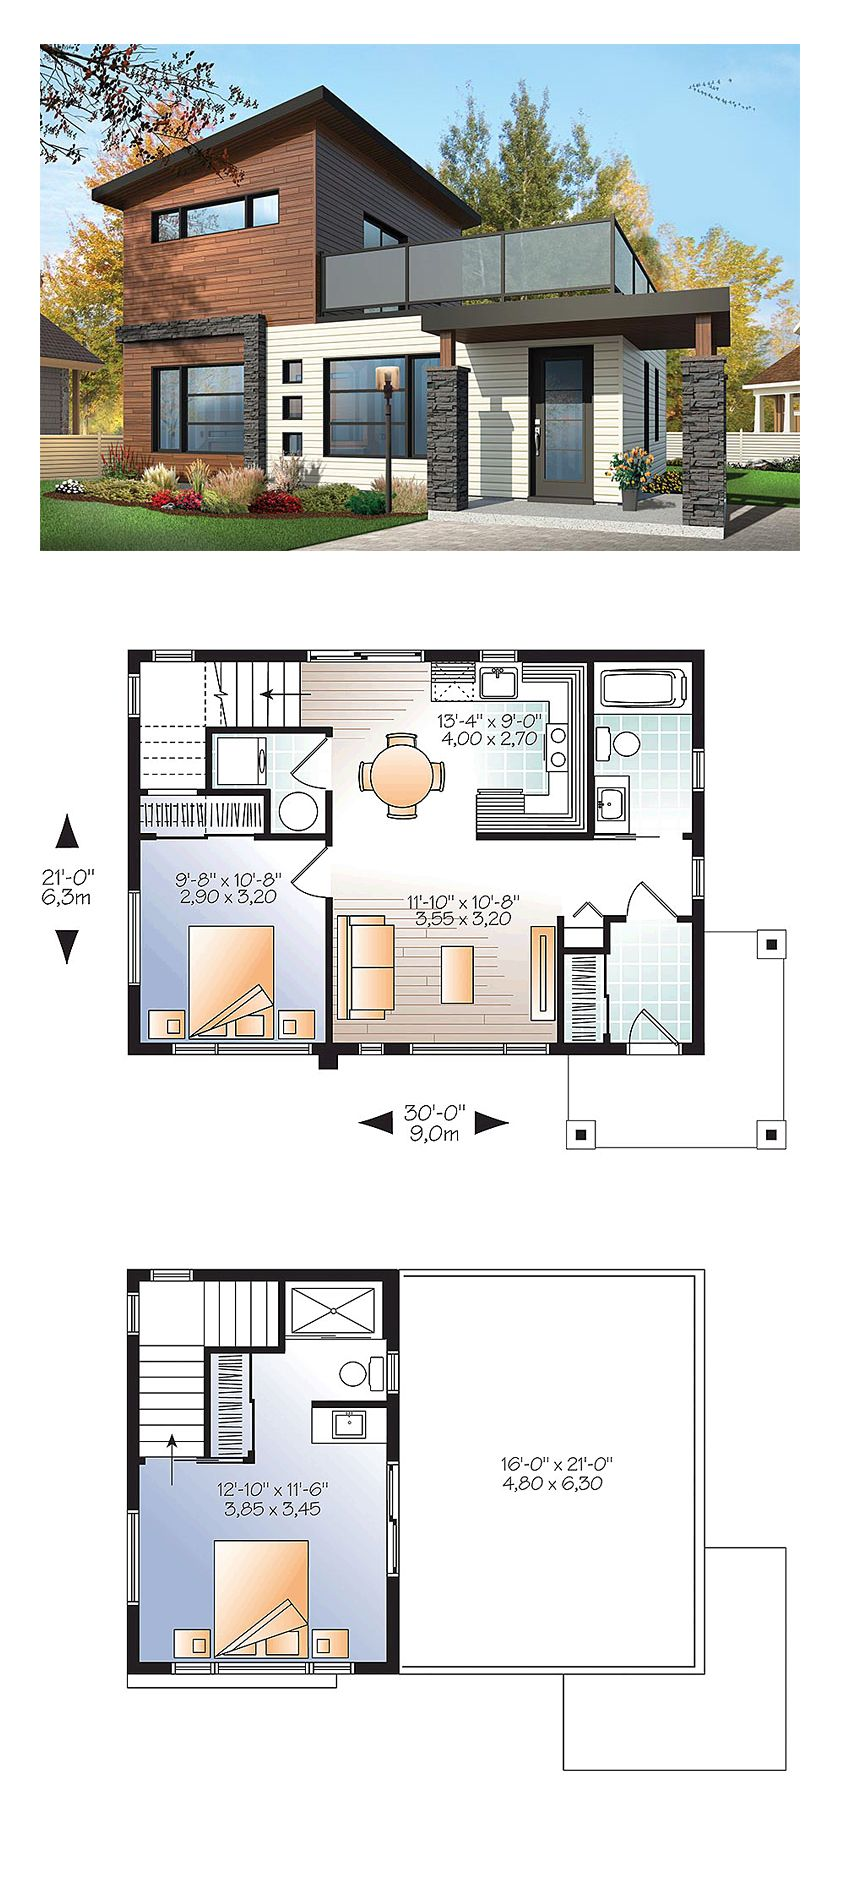 Modern house plan total living area sq ft bedrooms and bathrooms modernhome also rh pinterest